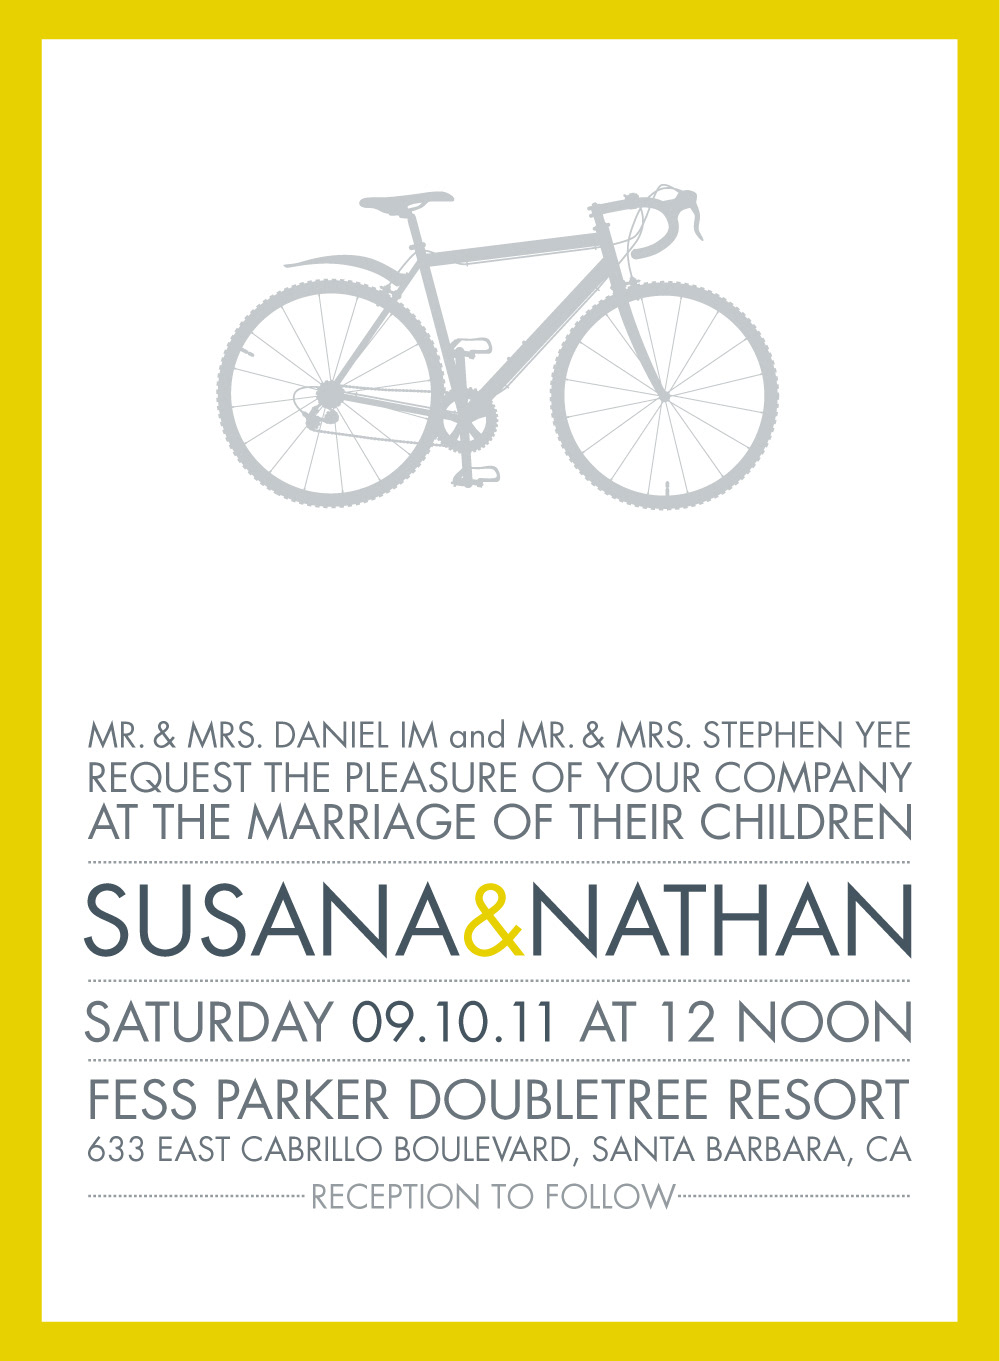 Laurie Bramlage - Susana & Nathan\'s Wedding Invitations